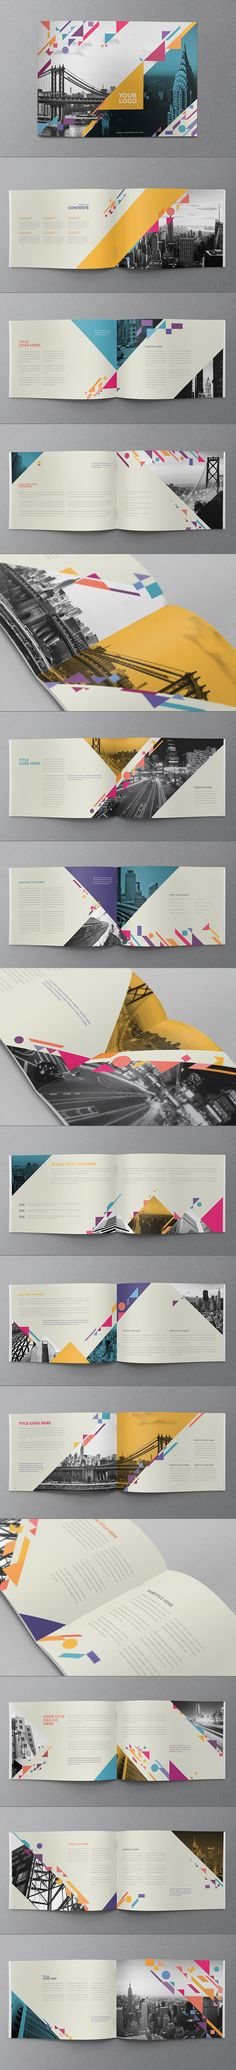 Colorful Shapes Brochure. Download here: http://graphicriver.net/item/colorful-shapes-brochure/9927862?ref=abradesign #design #brochure